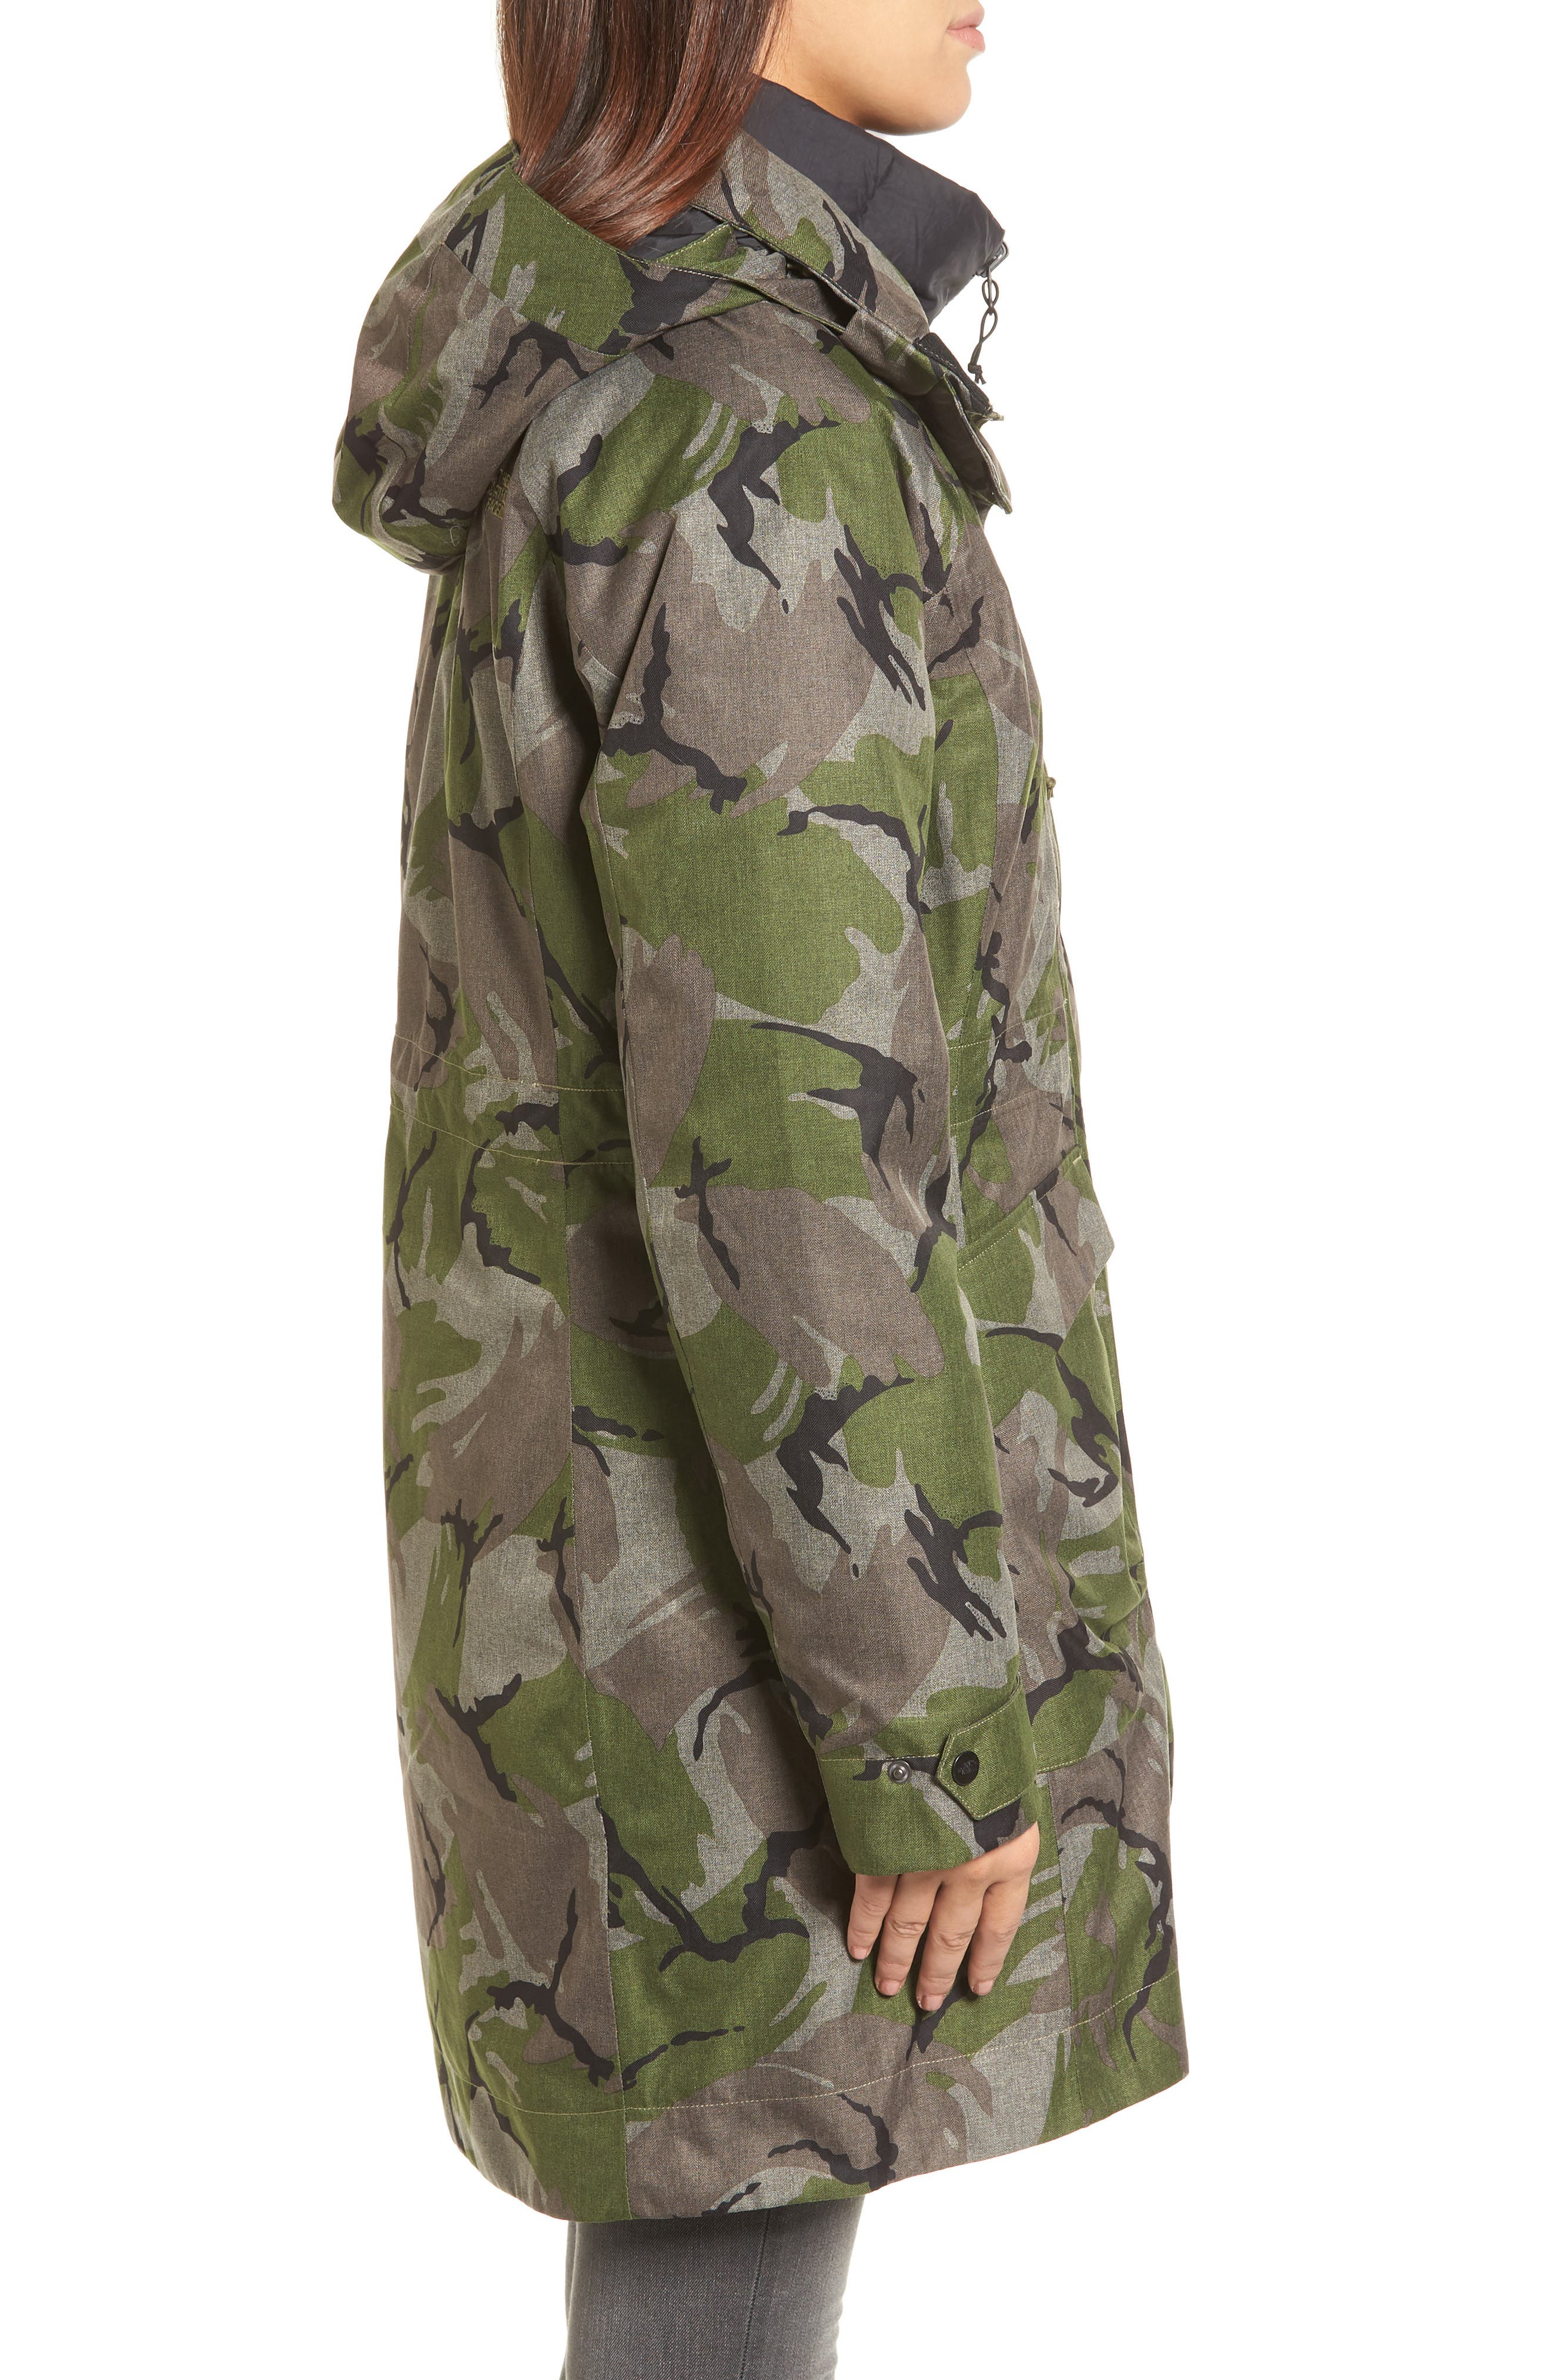 Outer Boroughs 3-in-1 TriClimate<sup>®</sup> Waterproof Jacket with Faux Fur Trim,                             Alternate thumbnail 3, color,                             Burnt Olive Green Disrupt Camo